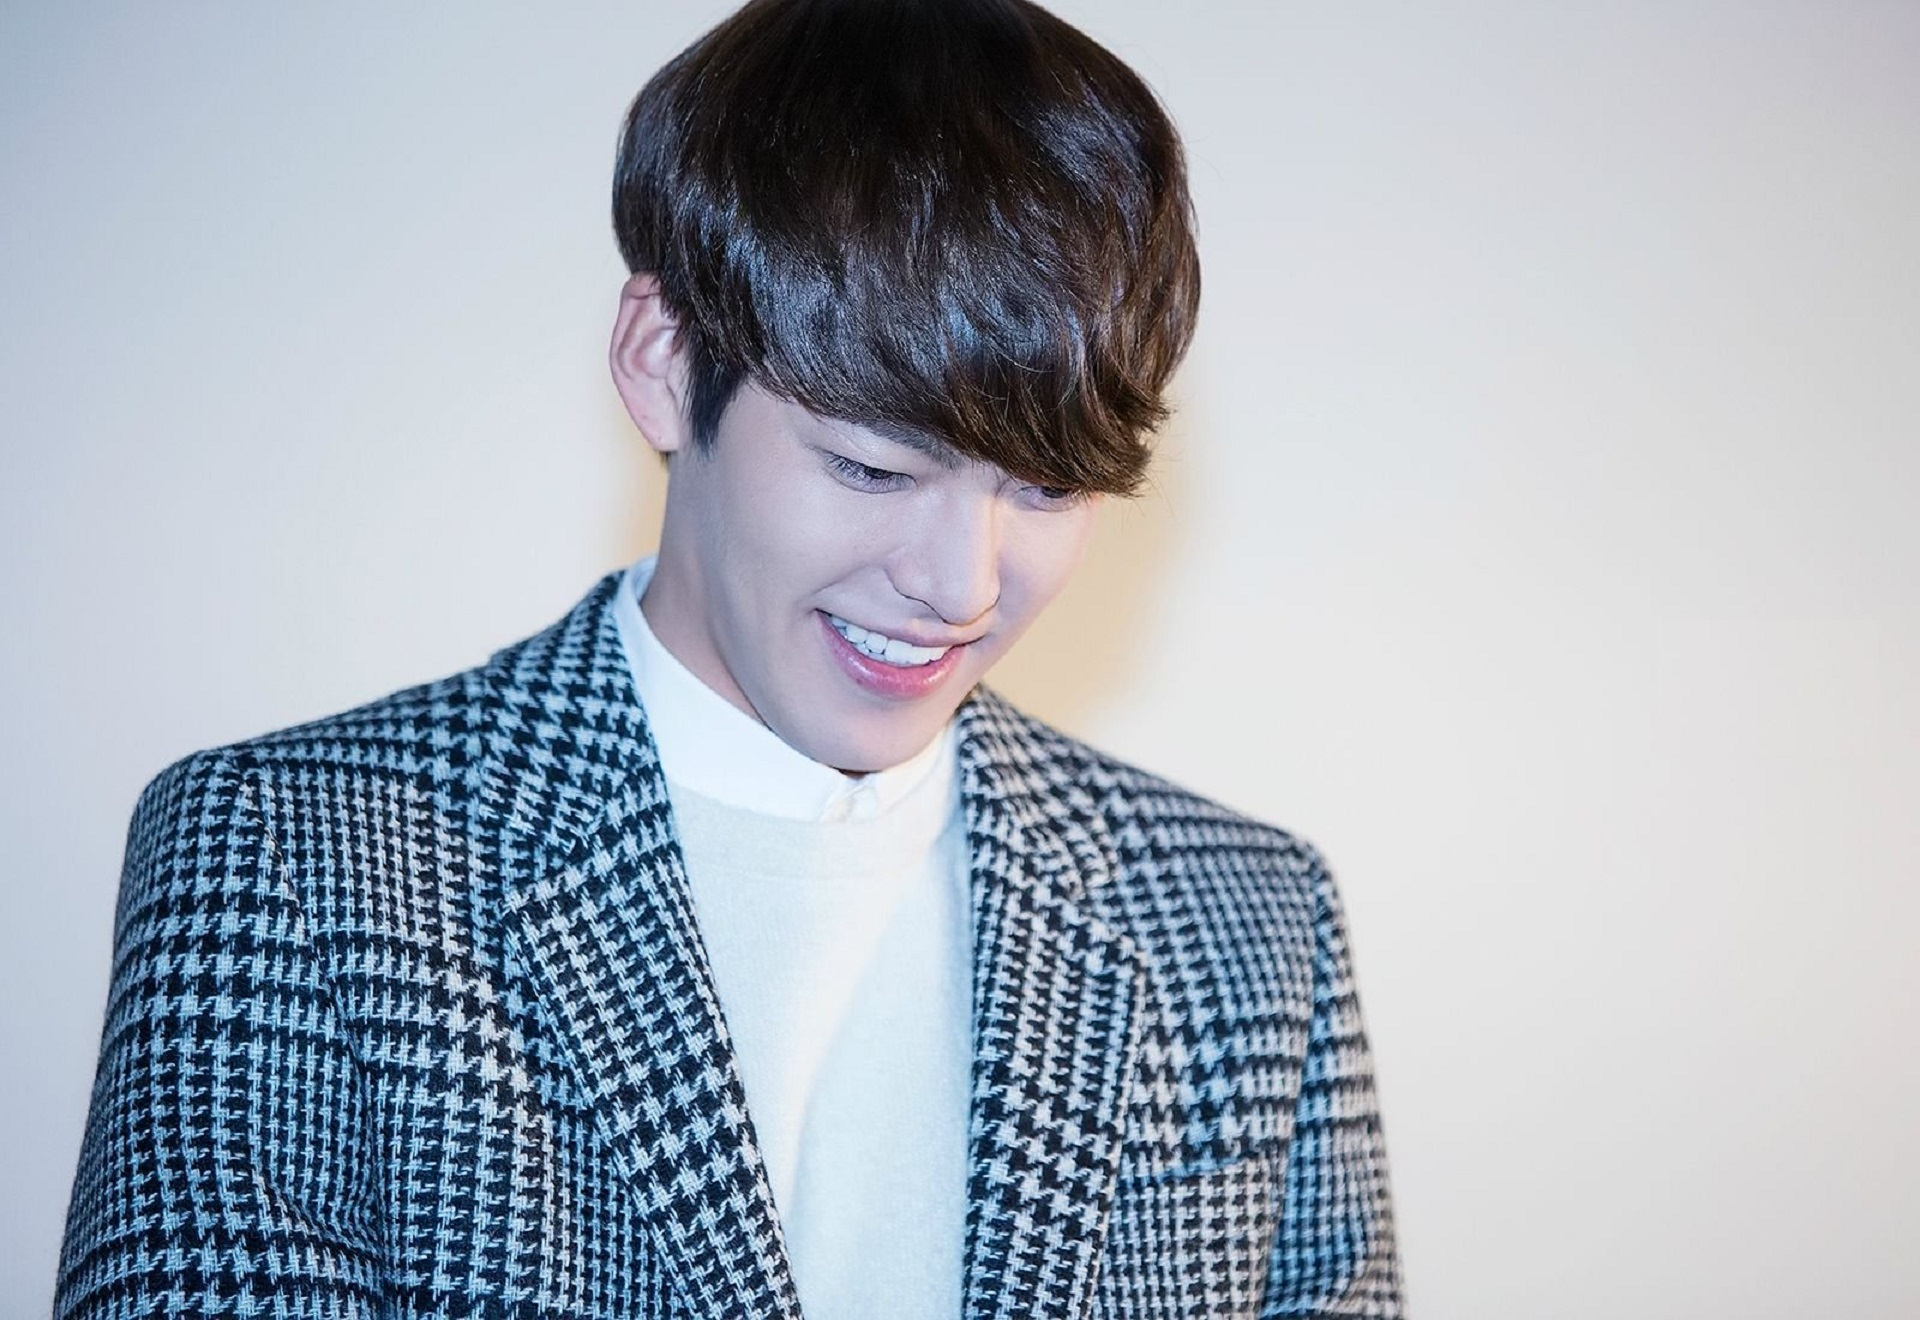 Kim Woo Bin Wallpapers Images Photos Pictures Backgrounds 1920x1320